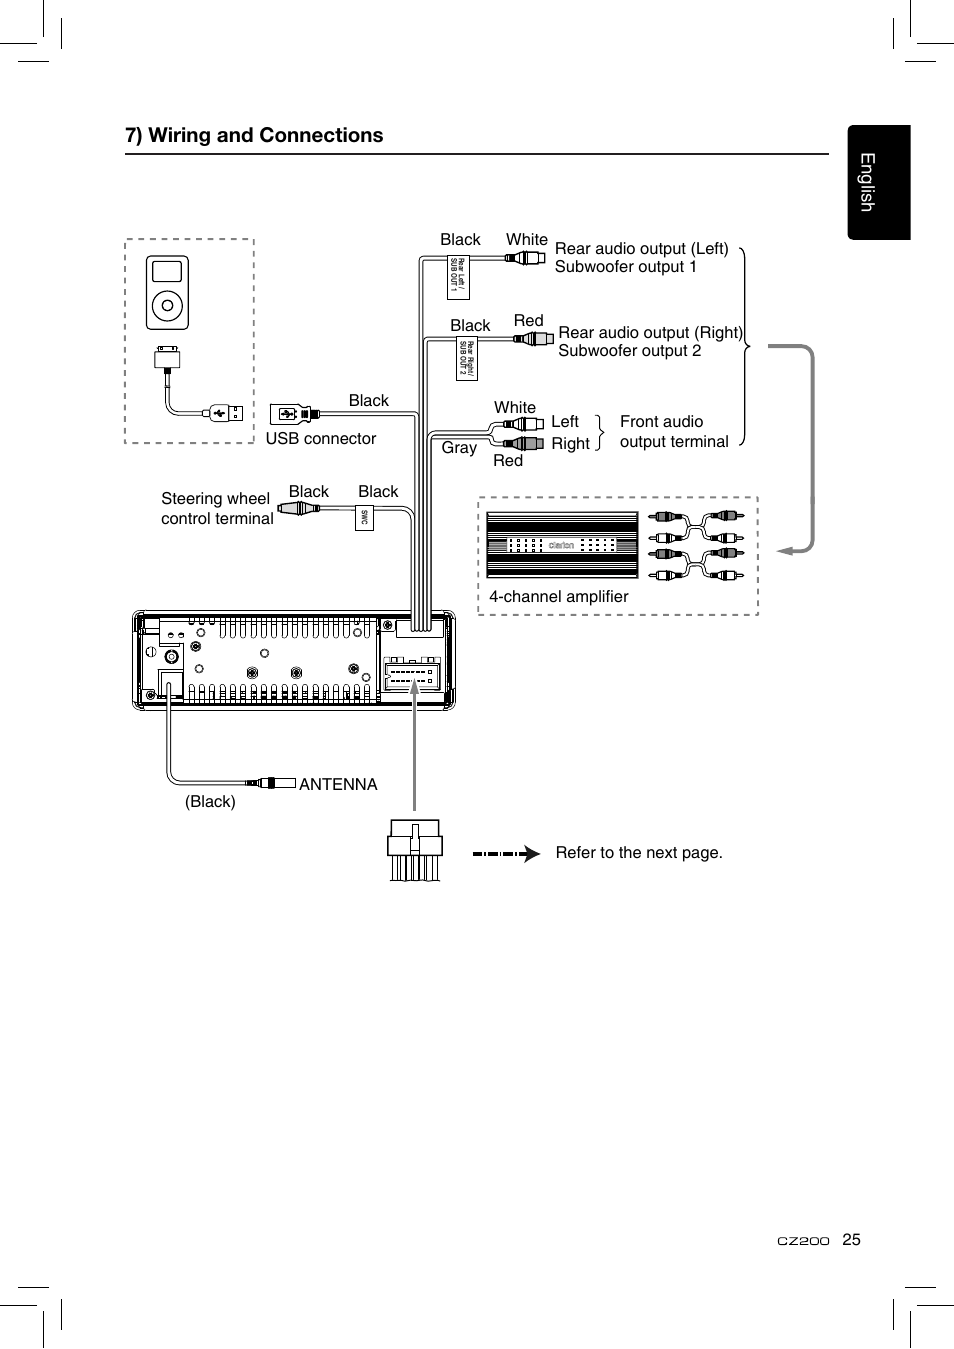 Cd Changer Clarion Cz100 Wiring Diagram Cz200 Free Download 7 And Connections User Manual Page 25 27